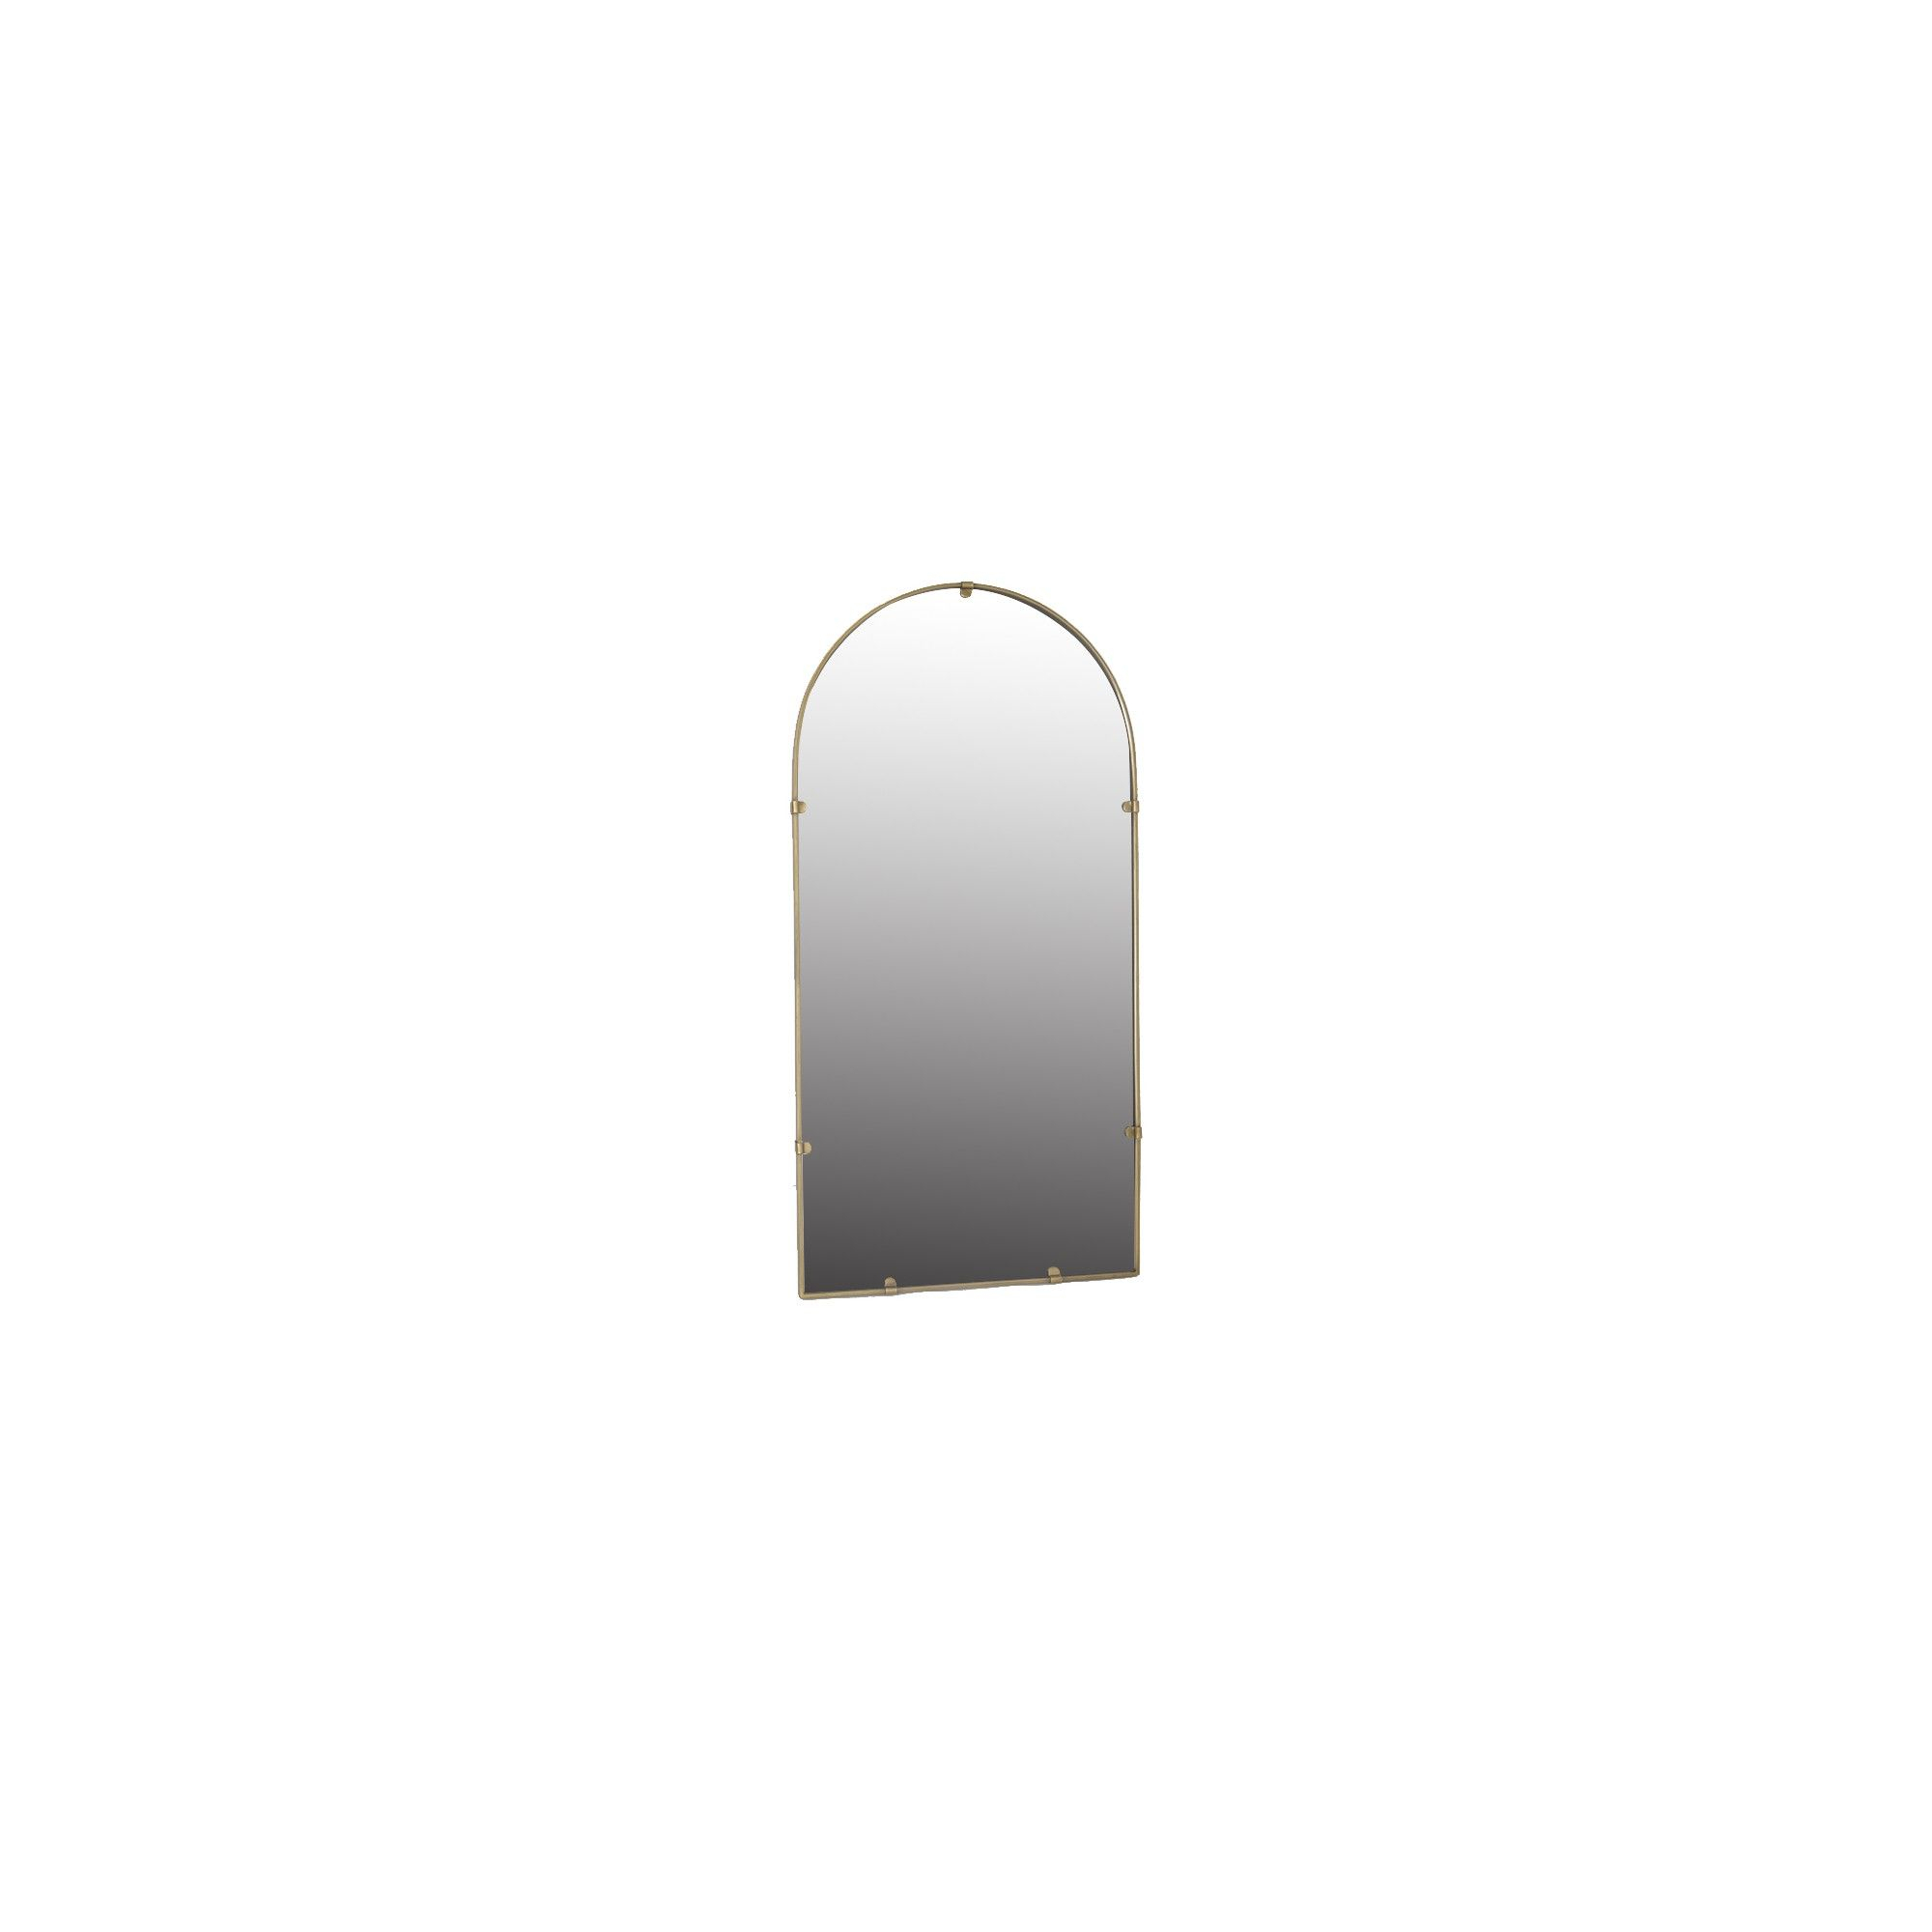 "18""x36"" Industrial Arc (Powder Coat) Decorative Wall Mirror Intended For Industrial Modern & Contemporary Wall Mirrors (View 2 of 30)"